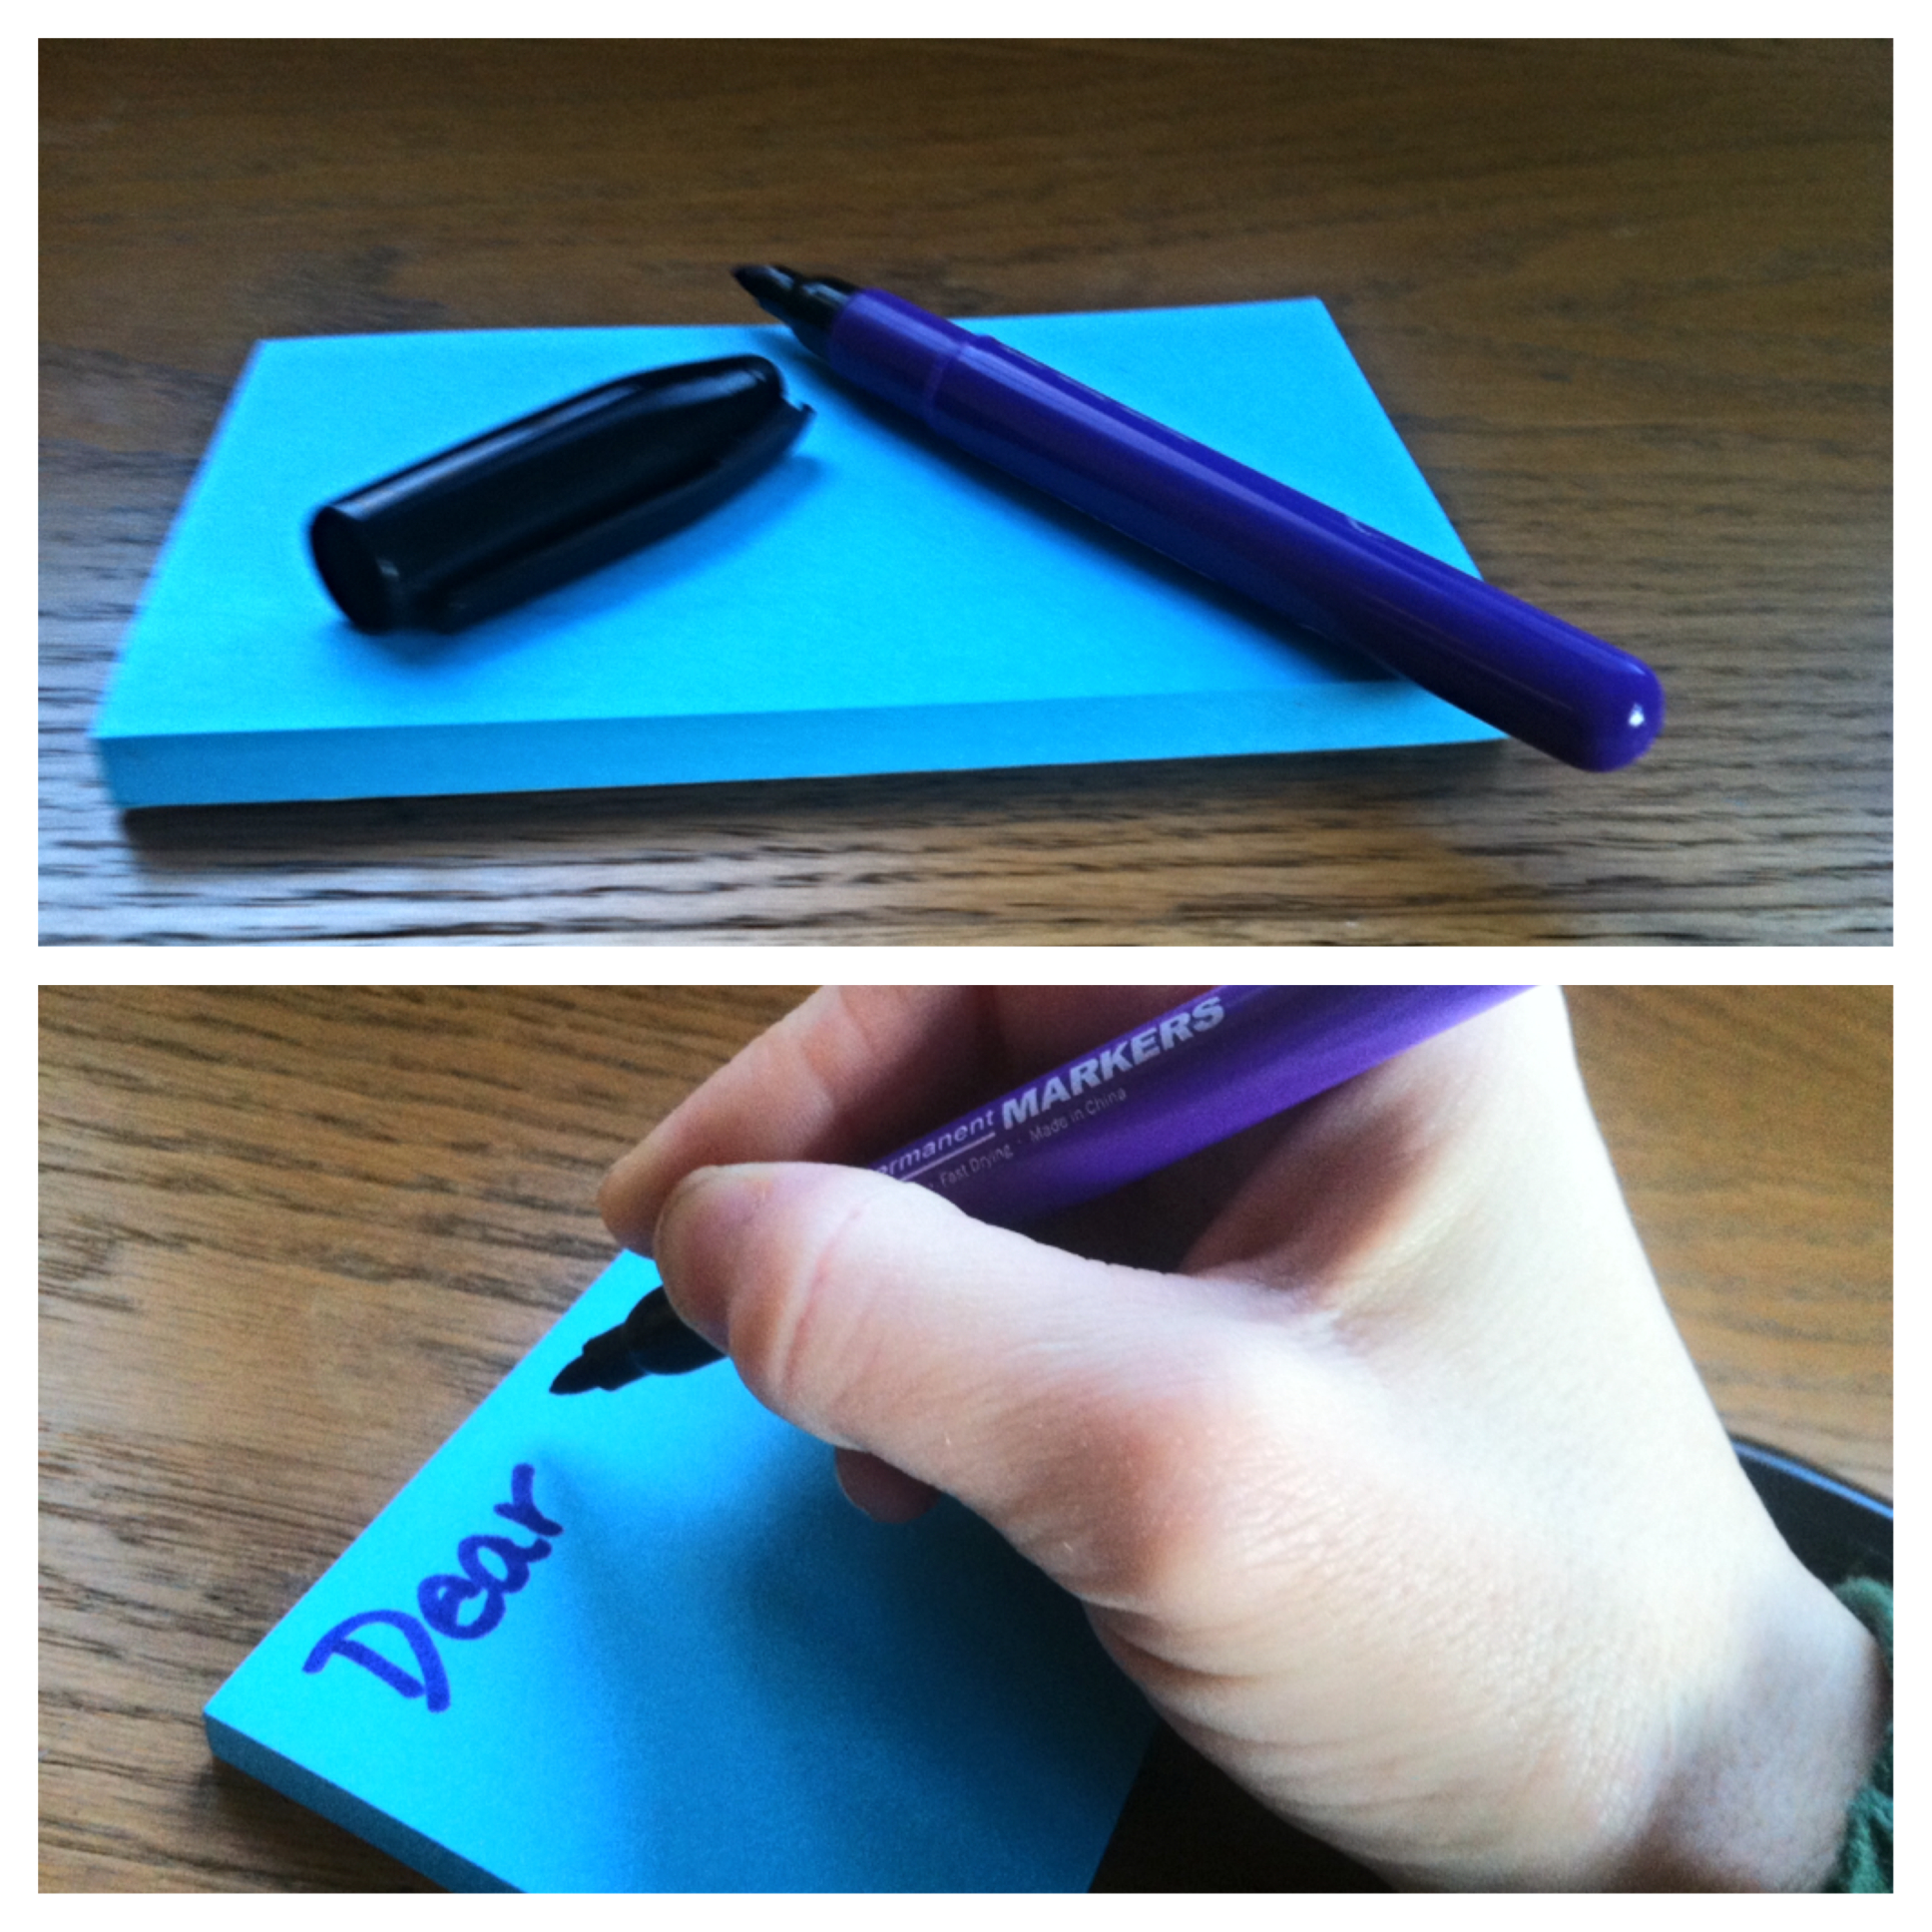 Grab a sticky note pad, a pen and get writing!